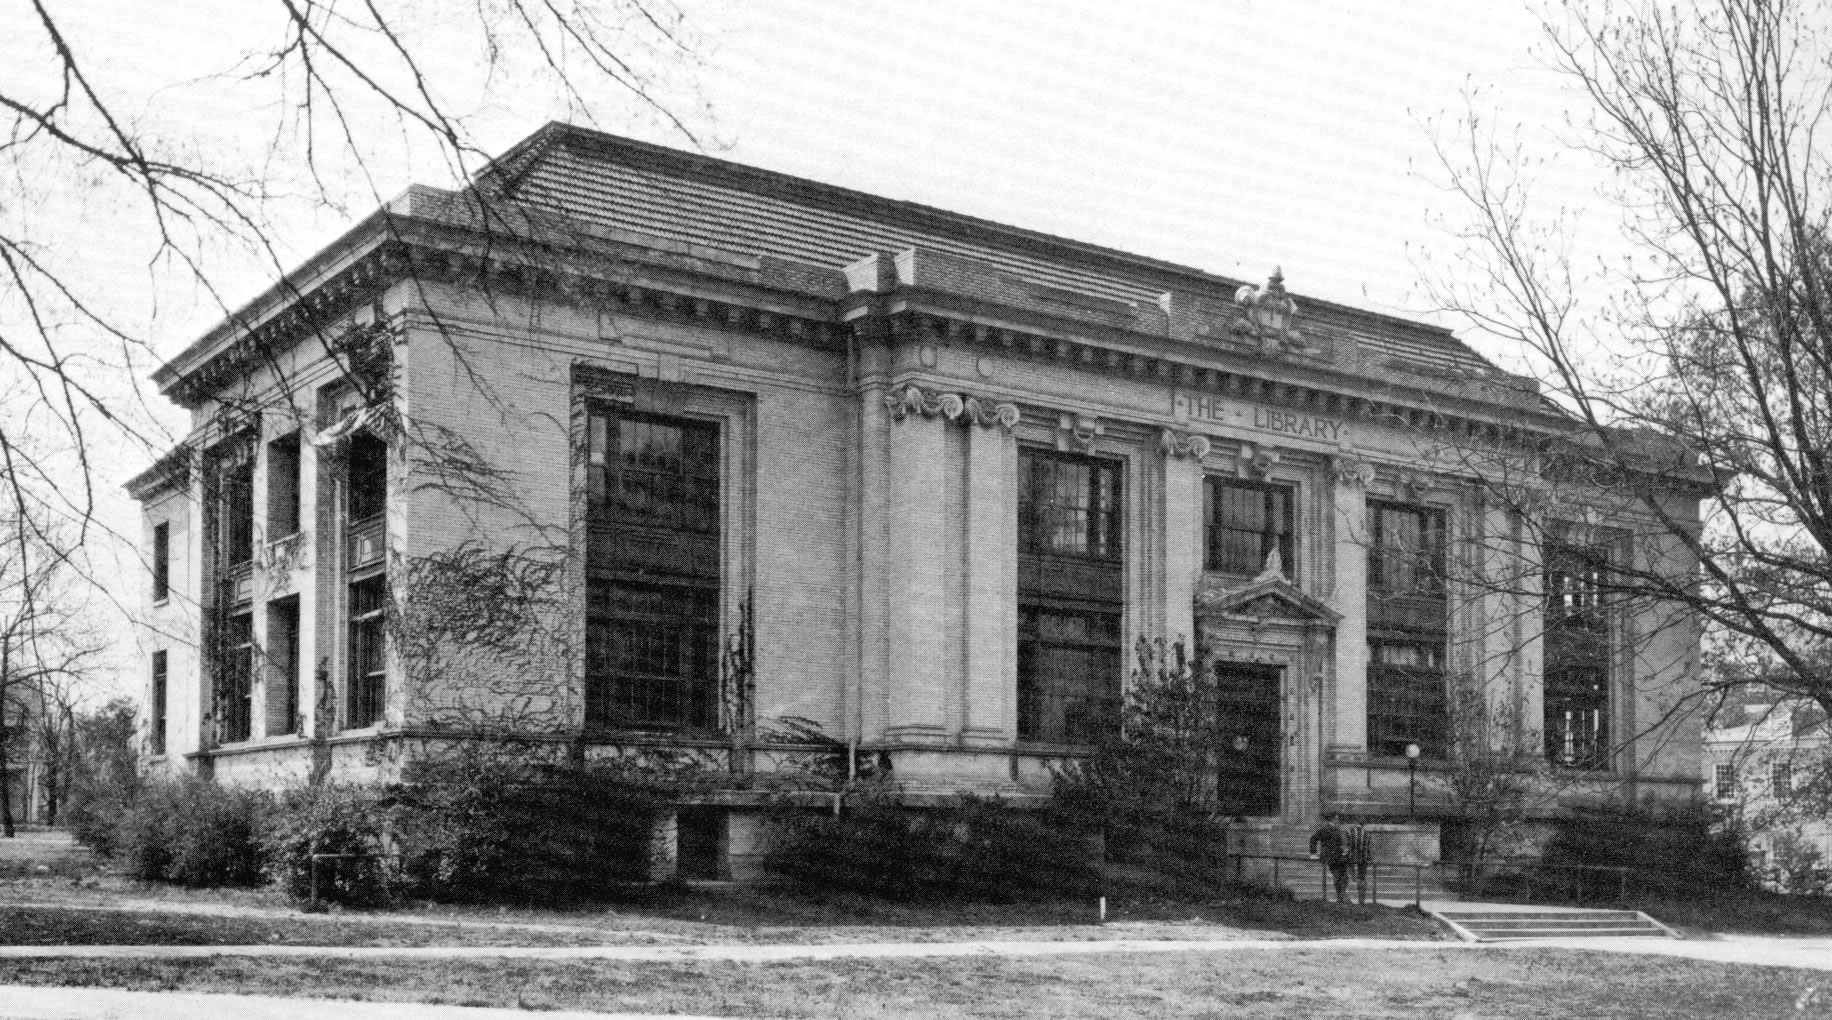 Carnegie Library, UNC. Photo courtesy of UNC Plan Room: https://planroom.unc.edu/FacilityInfo.aspx?facilityID=020